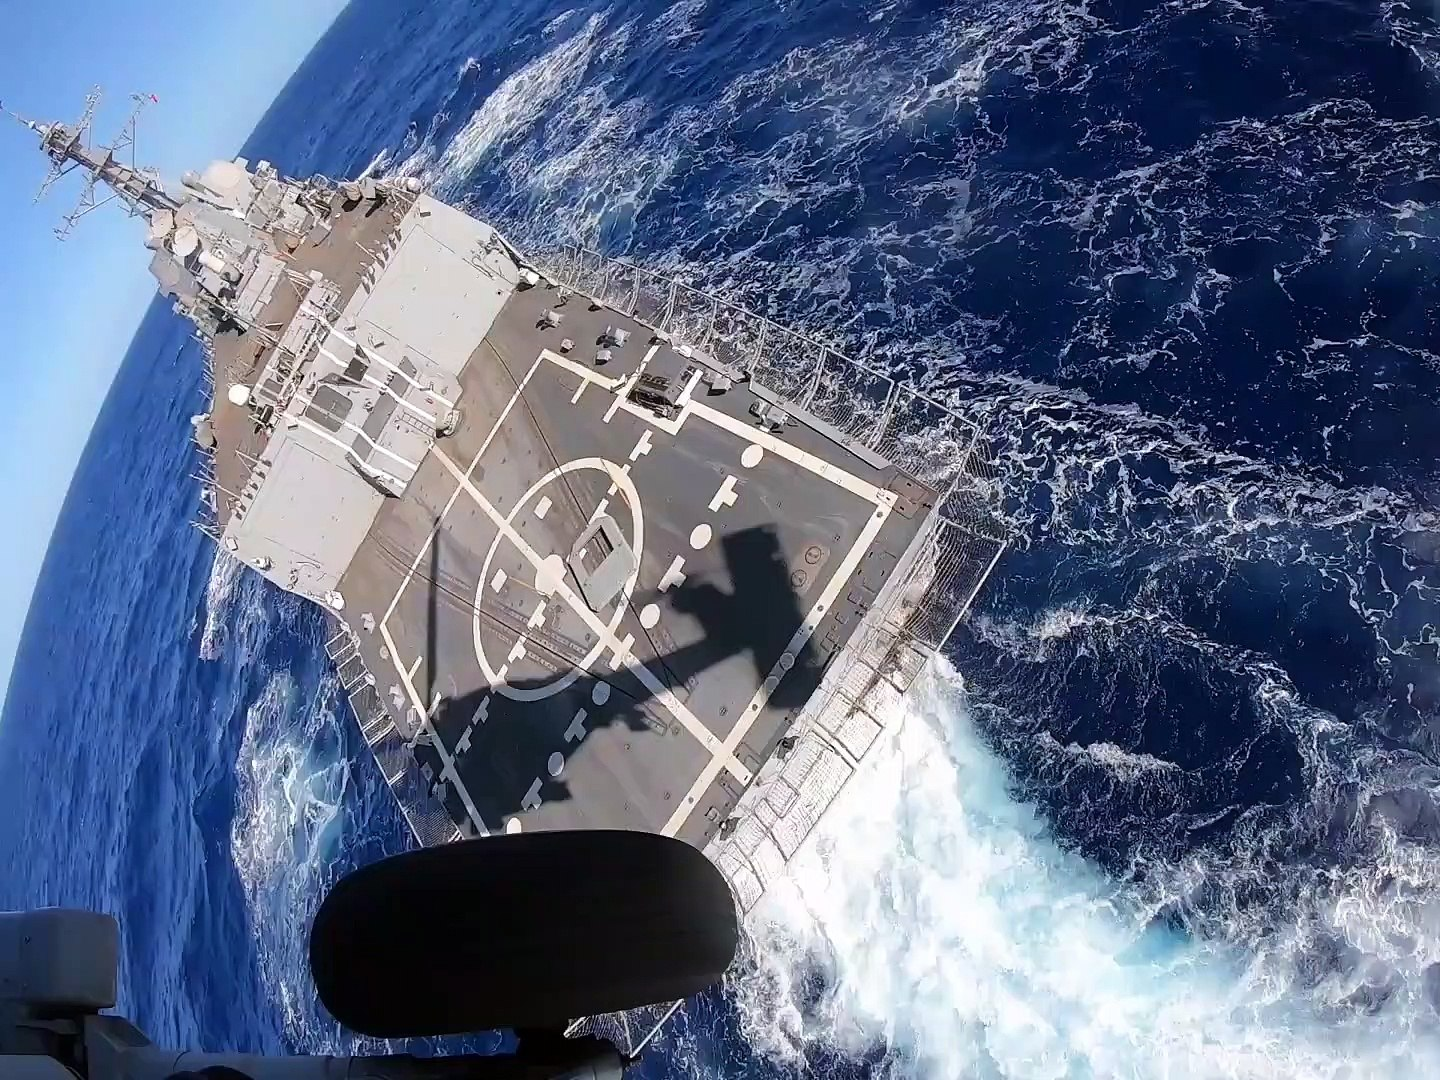 U.S. Navy • MH-60R Sea Hawk Helicopter • Launches from USS Dewey